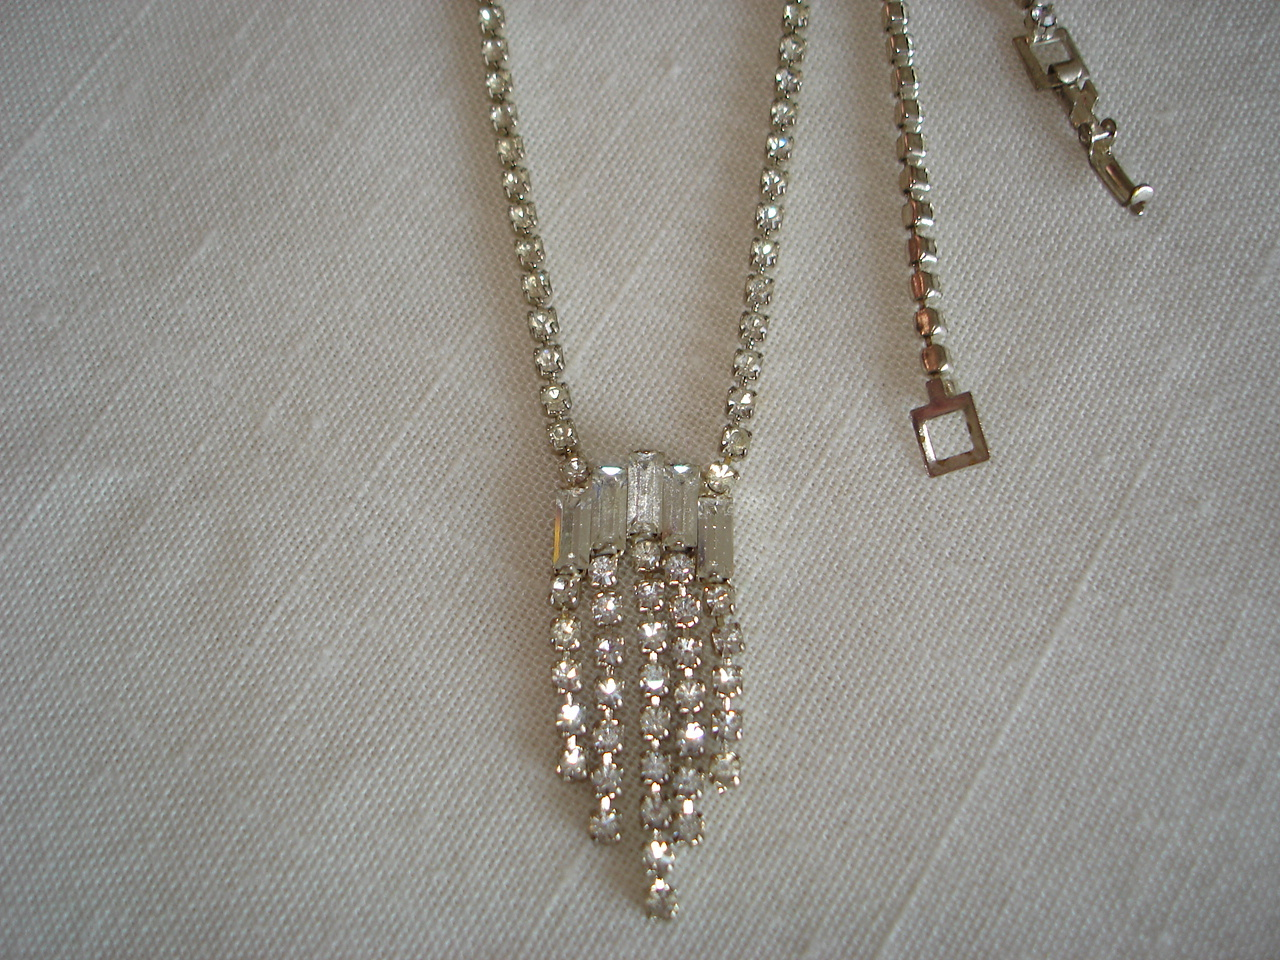 Vintage Silvertone Necklace, Paved Clear Rhinestone, Dangles